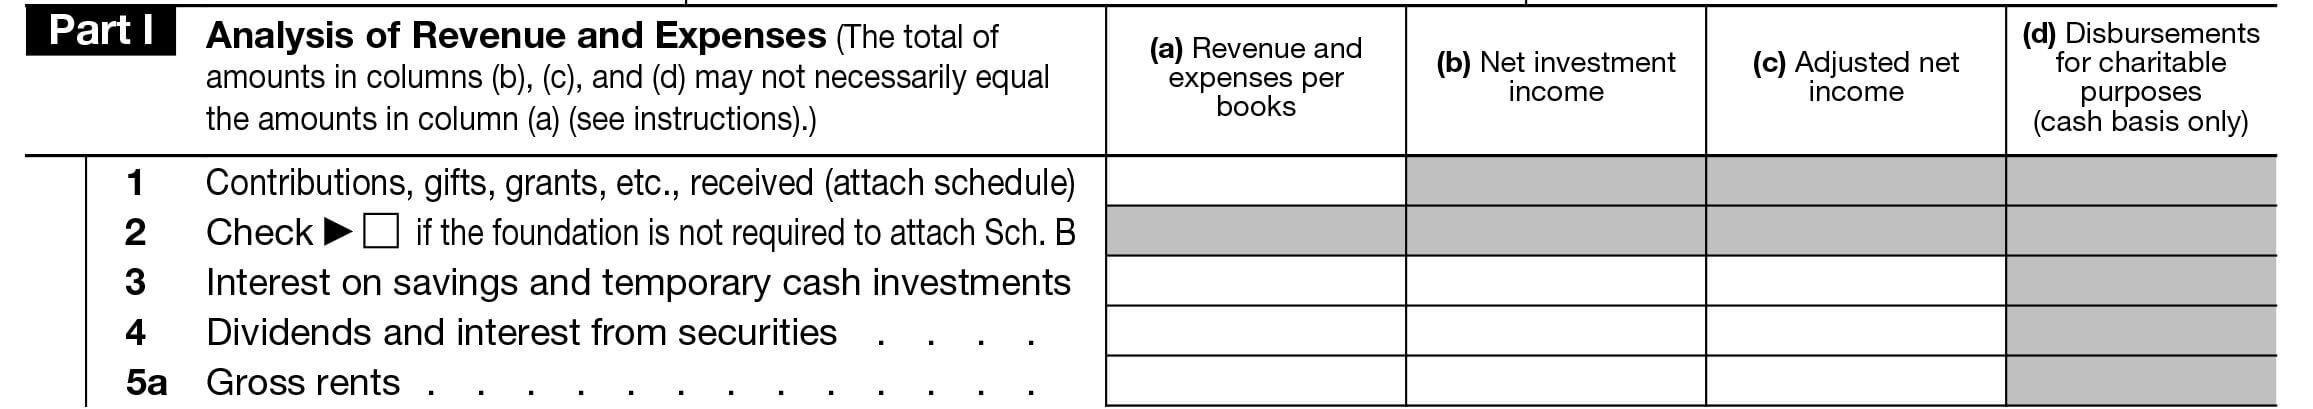 Part 1 - Analysis of Revenue and Expense